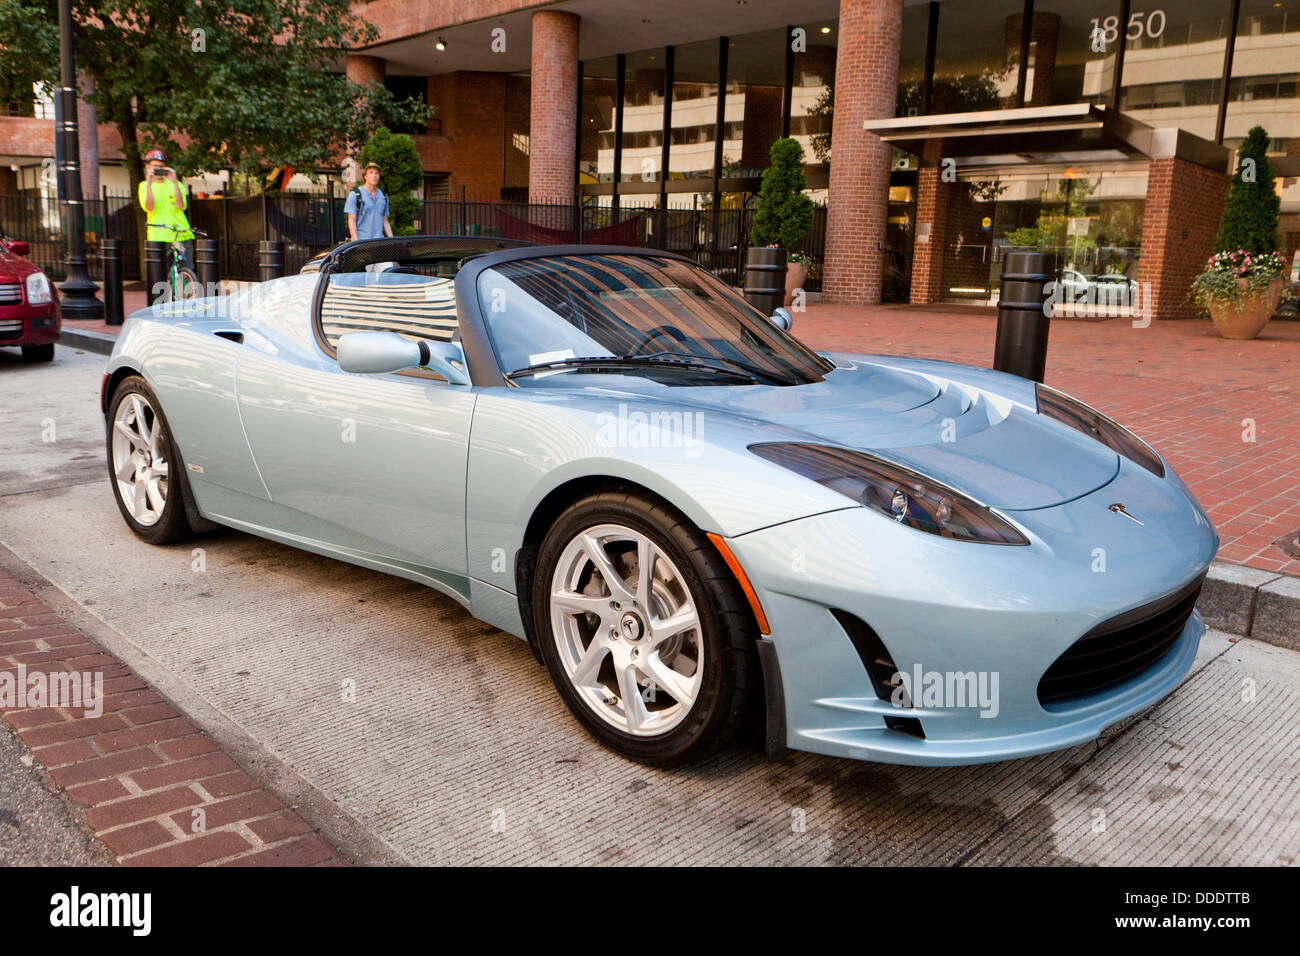 Tesla Roadster Sport 2.5 electric car parked in front of office building - USA - Stock Image